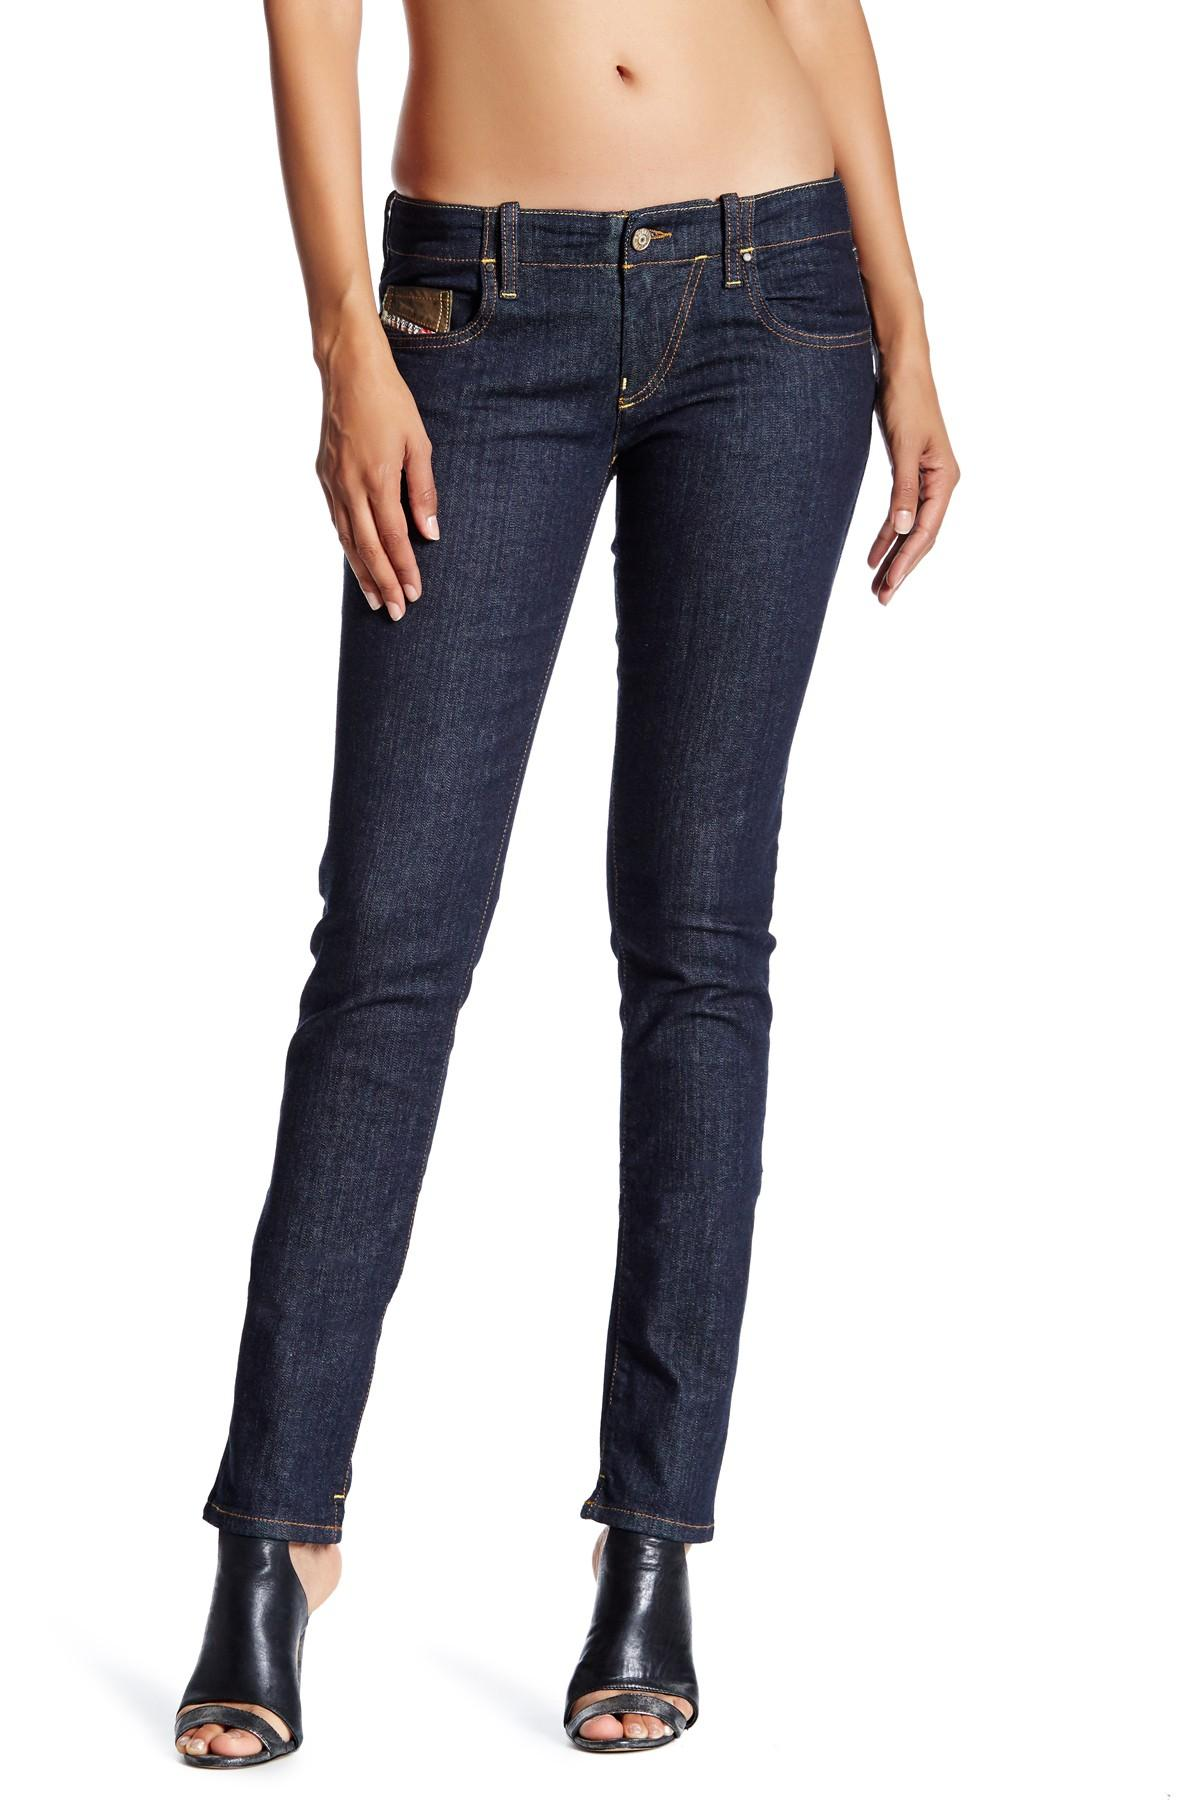 AMI Club wear low rise jeans have a modern fit that is suitable for all body types. We have all types of denim jeans that are good quality at affordable prices. Sign Up for tips, coupons, and more.